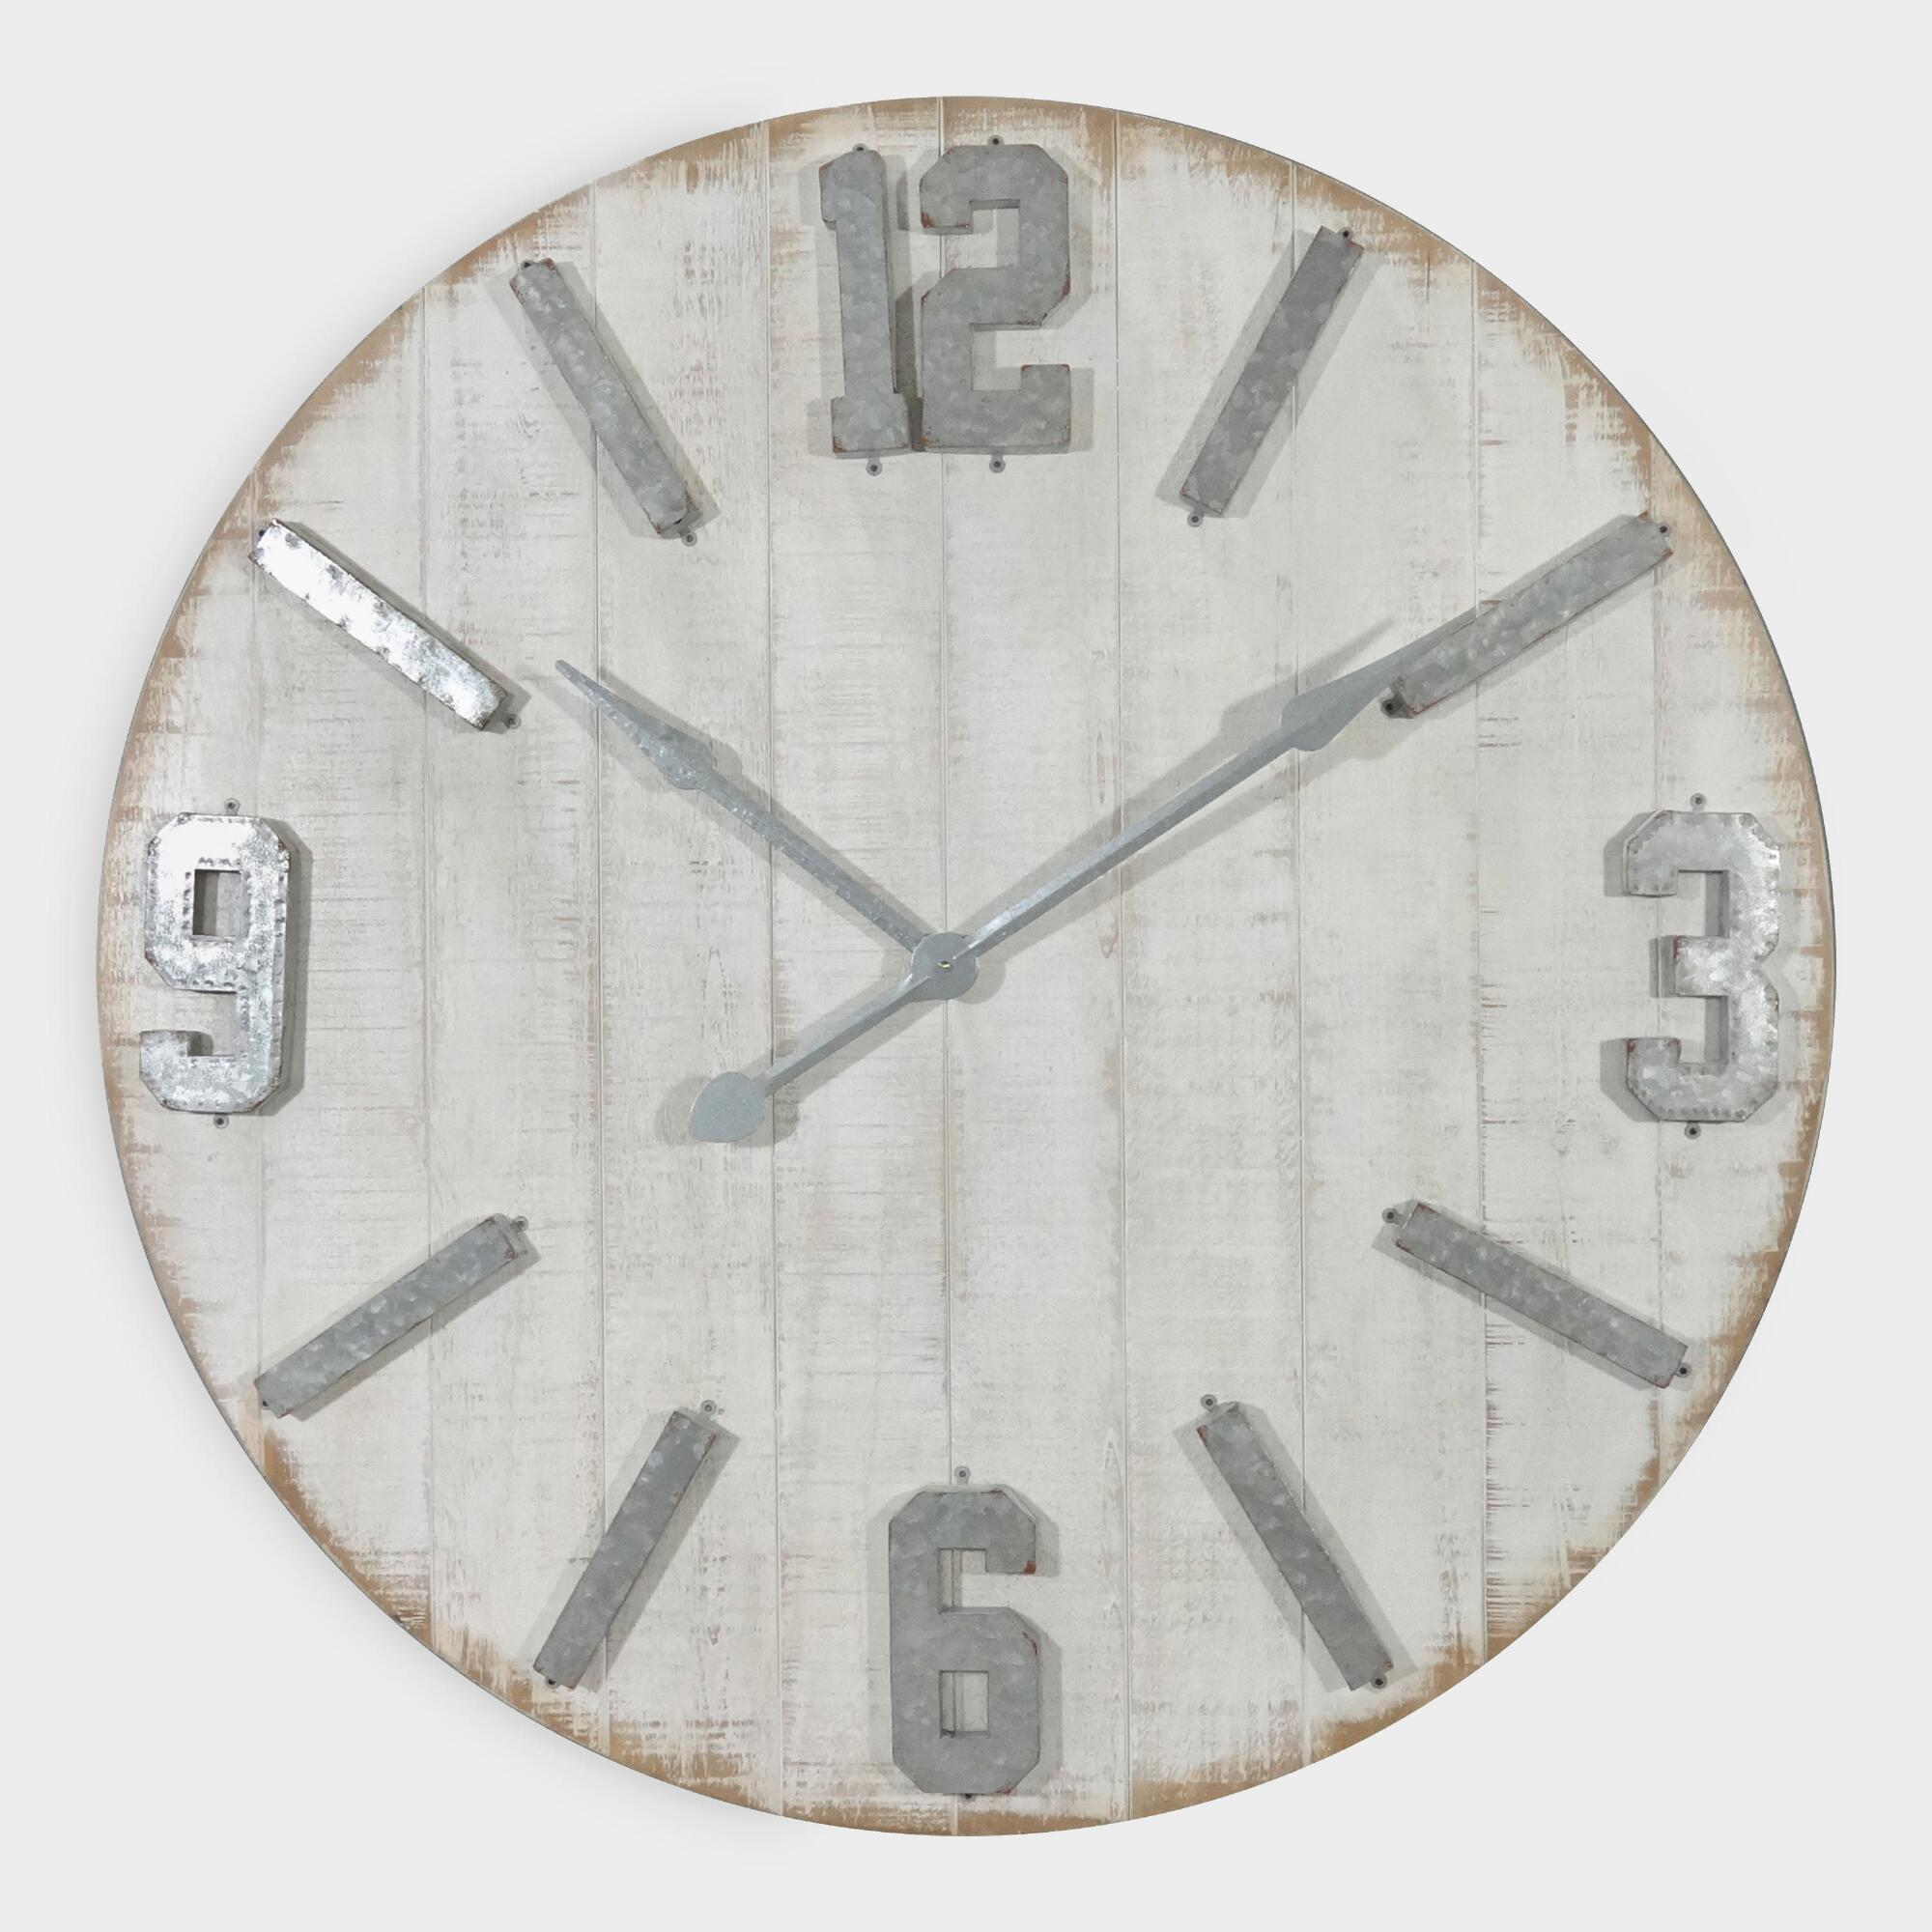 Rustic Whitewashed Wood Wall Clock by World Market